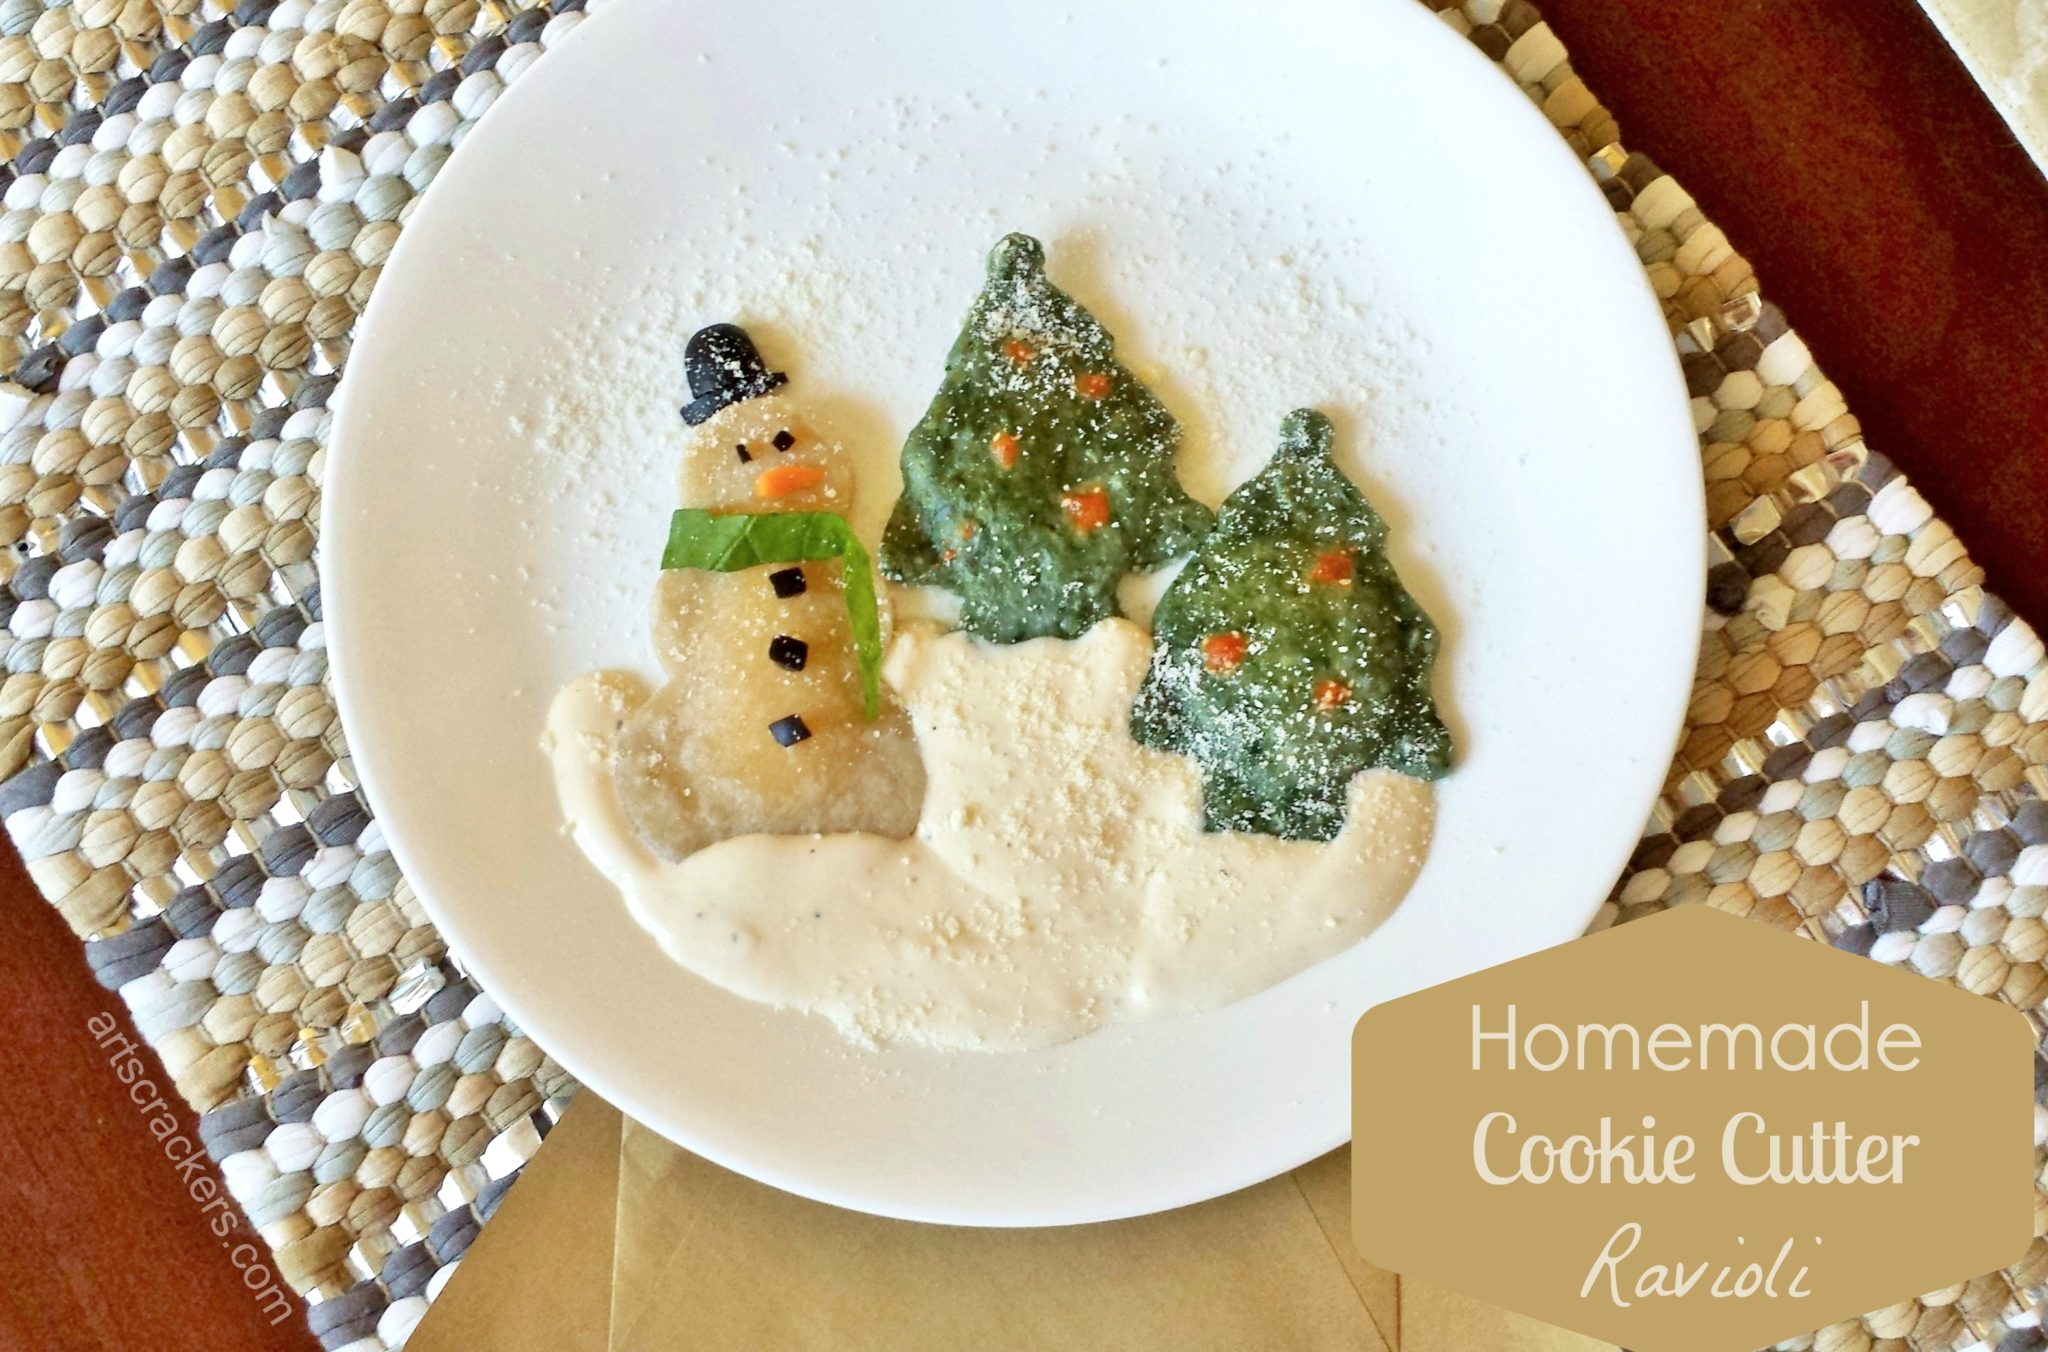 Homemade Cookie Cutter Ravioli Snowglobe